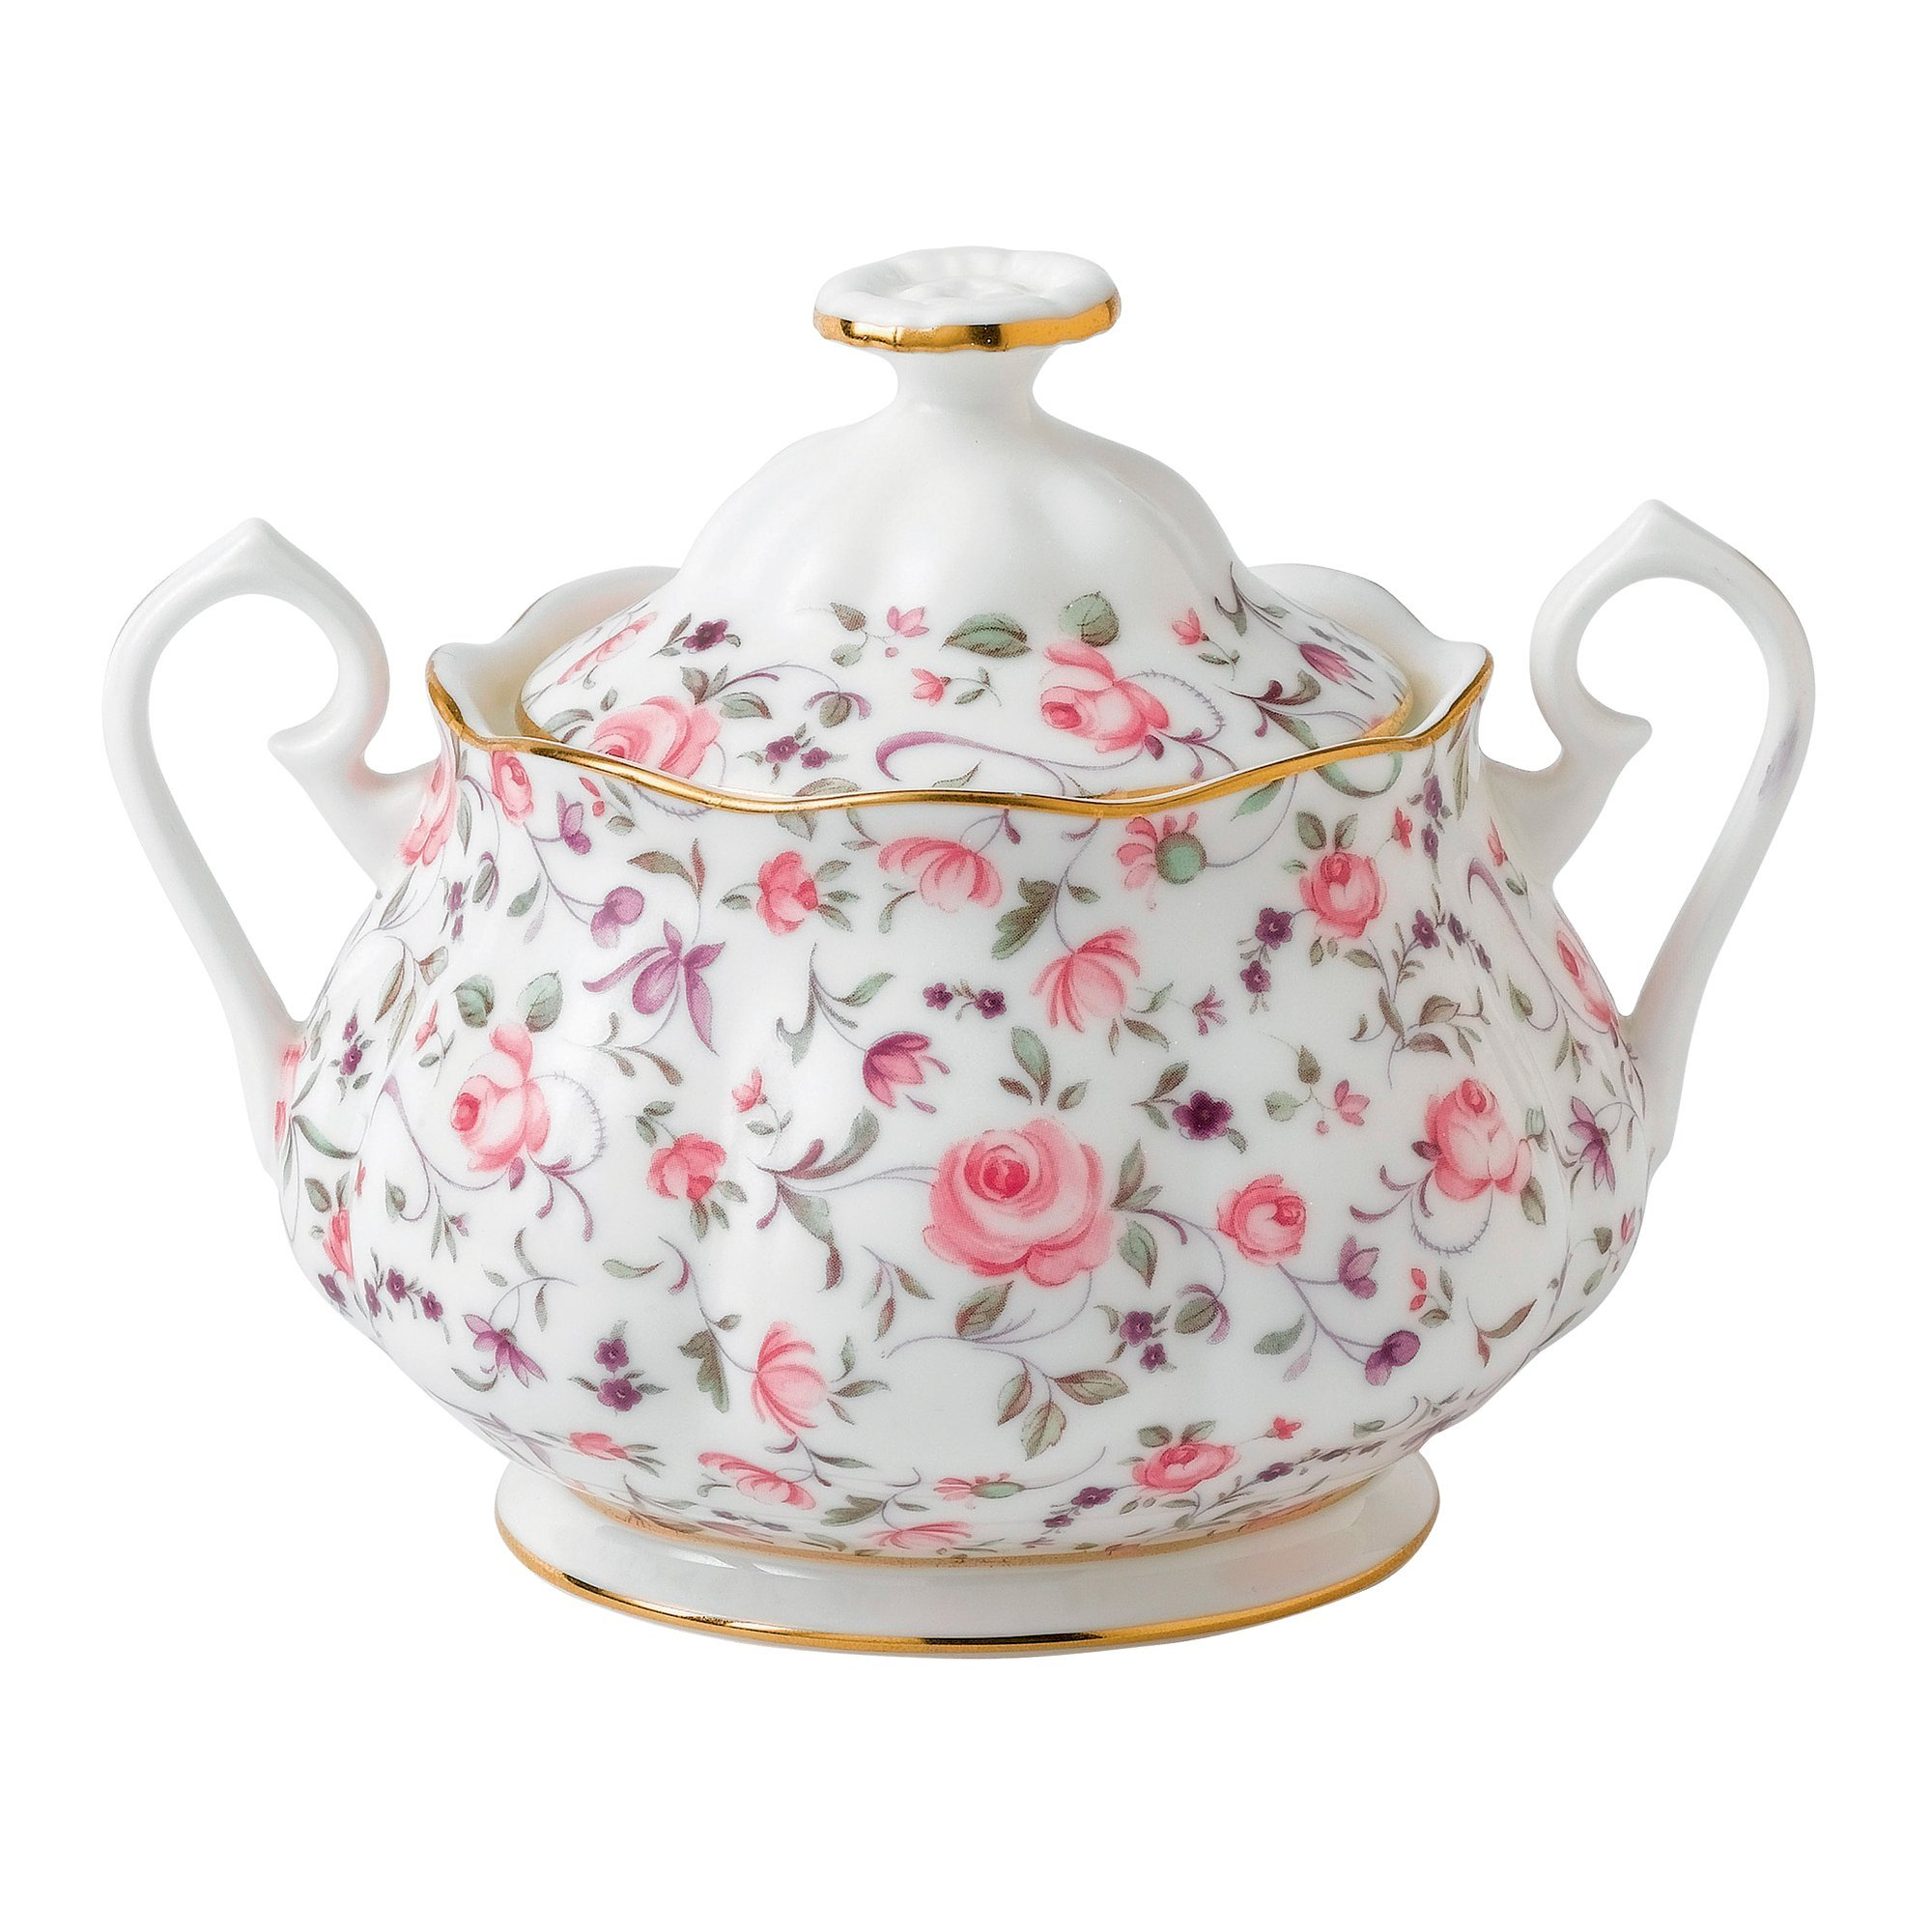 Royal Albert 8704025823 New Country Roses Rose Confetti Teaset, 3-Piece by Royal Albert (Image #3)